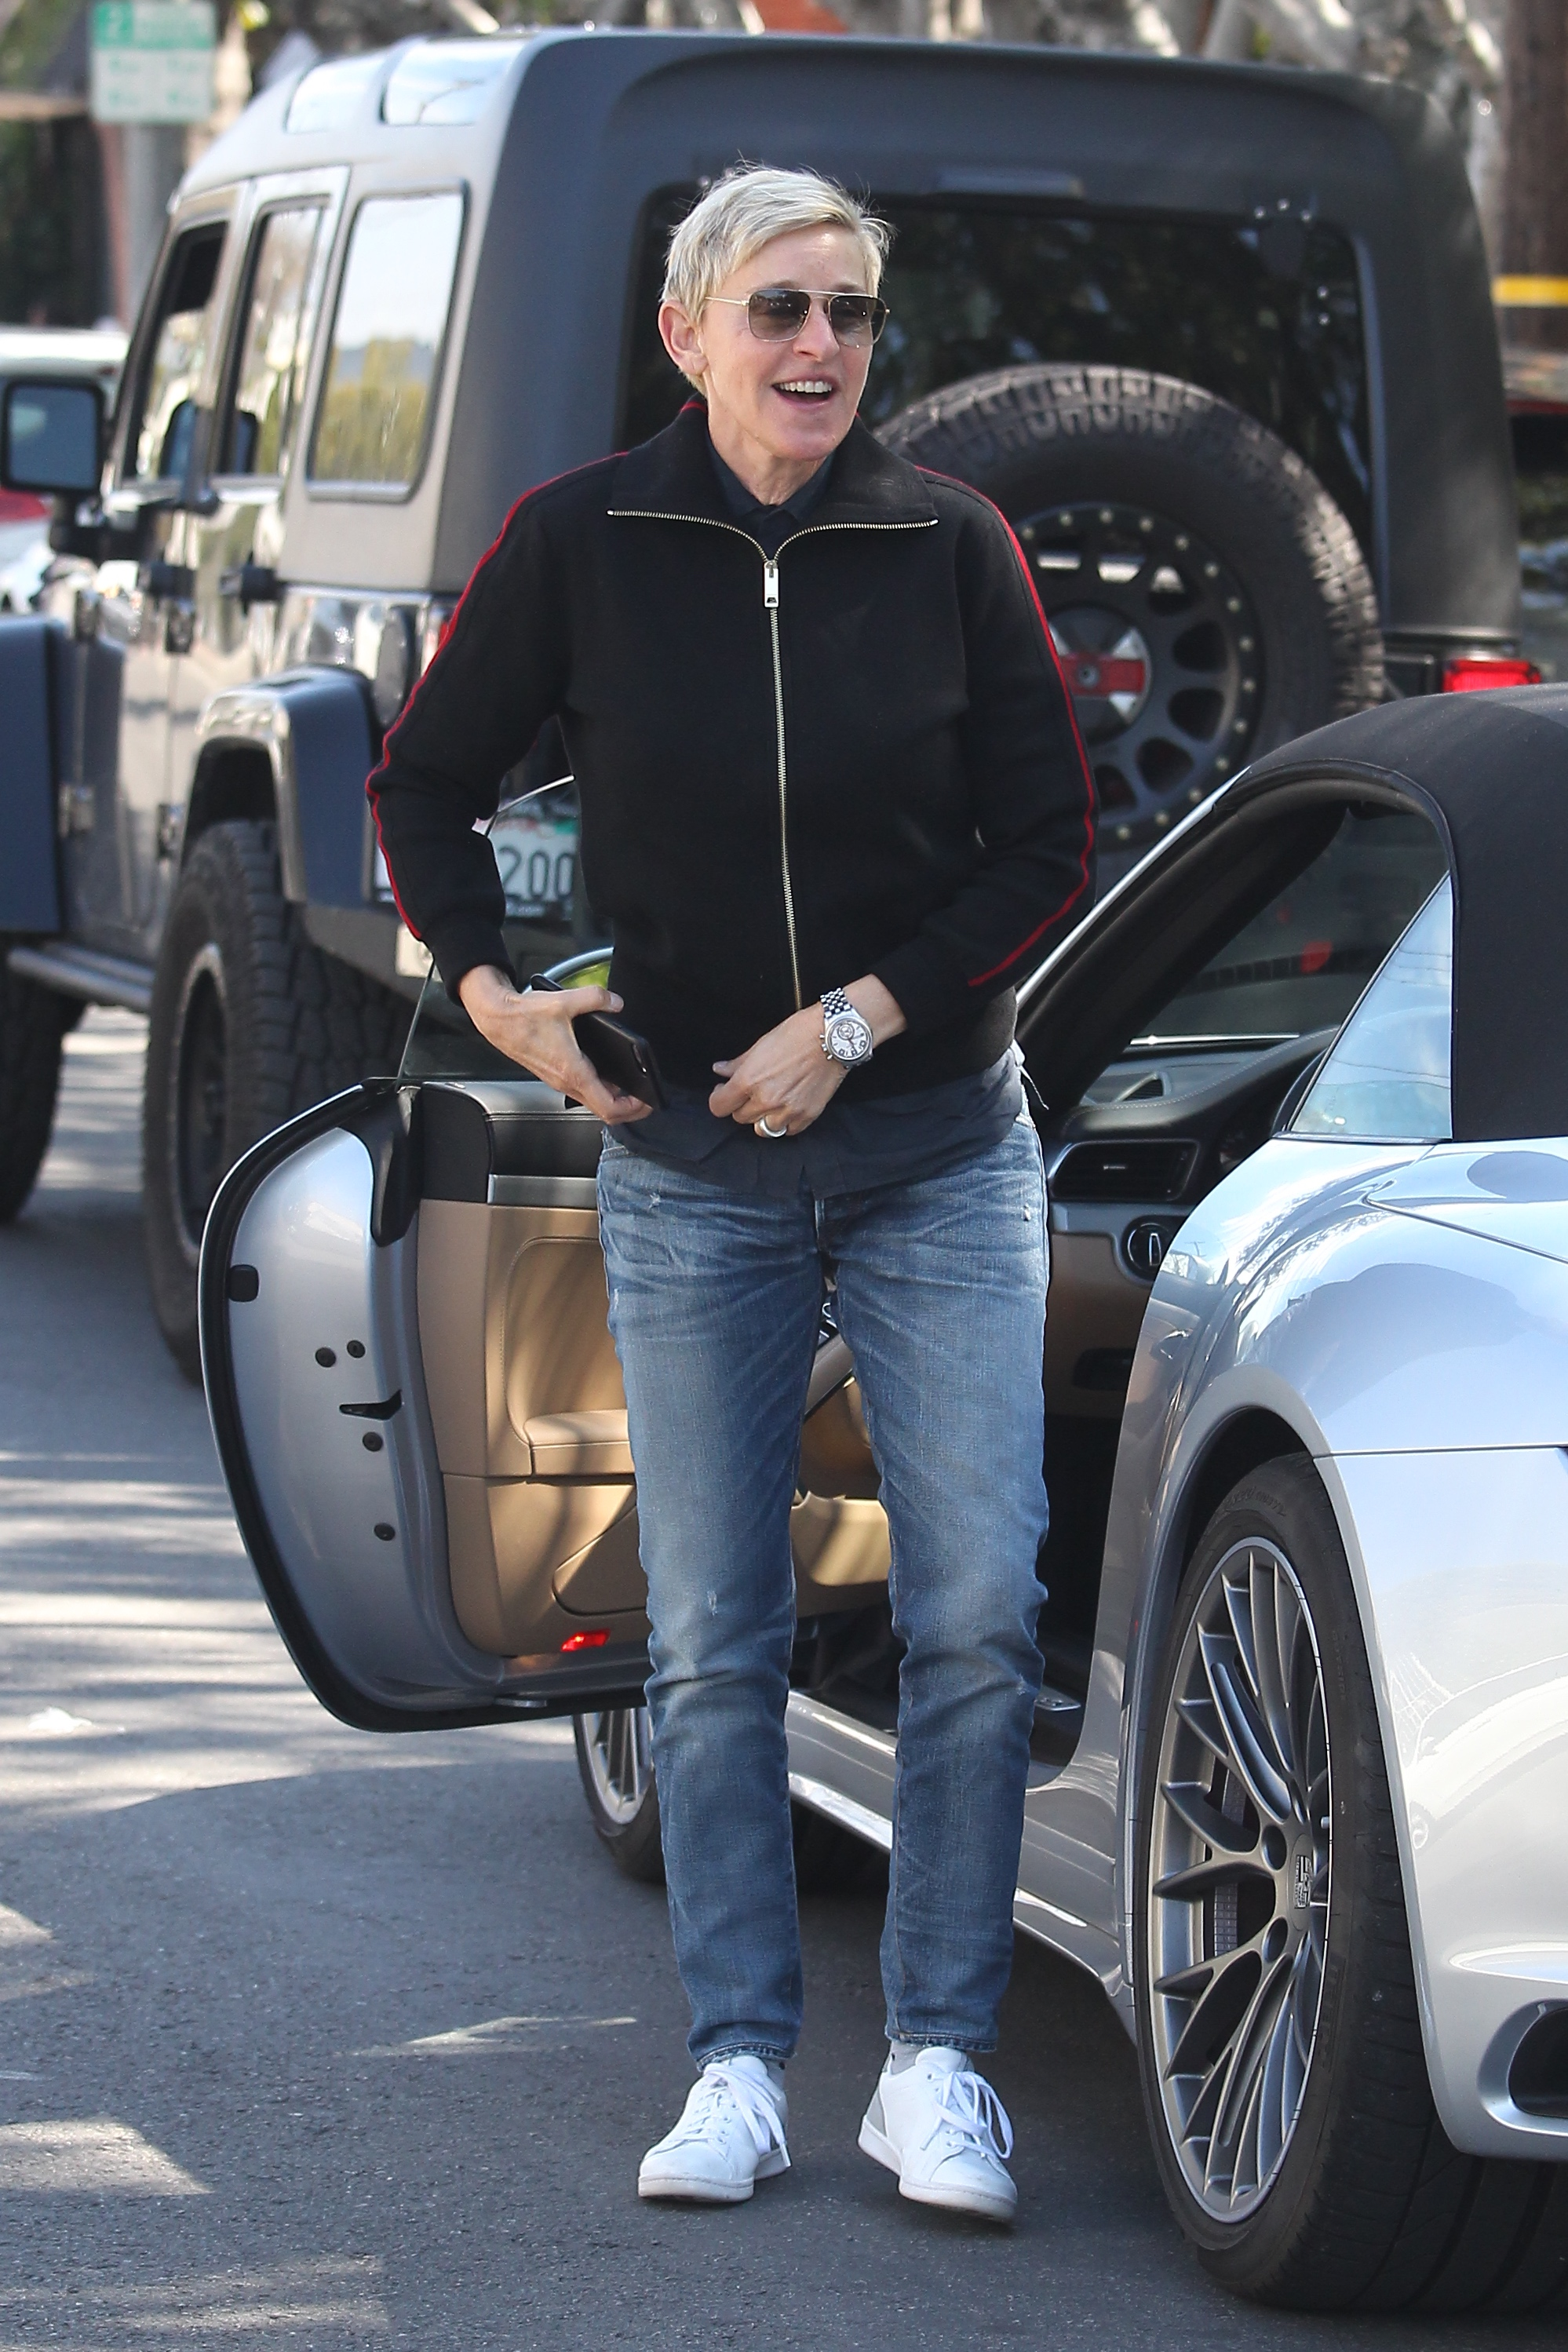 Ellen DeGeneres and wife Portia de Rossi hold hands as they stroll Melrose Place                                    Featuring: Ellen DeGeneres                  Where: Beverly Hills, California, United States                  When: 25 Feb 2017                  Credit: WENN.com